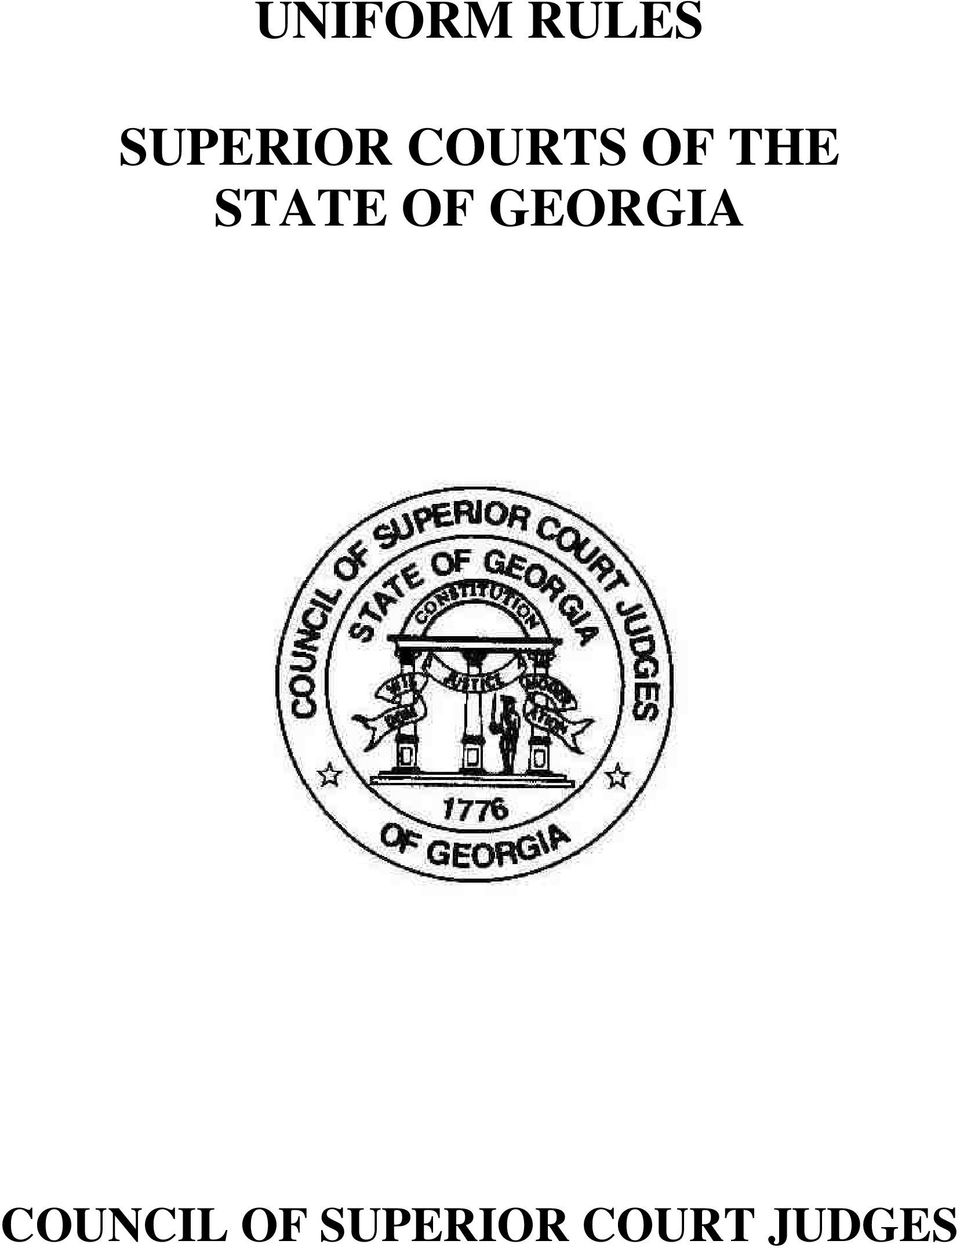 UNIFORM RULES SUPERIOR COURTS OF THE STATE OF GEORGIA